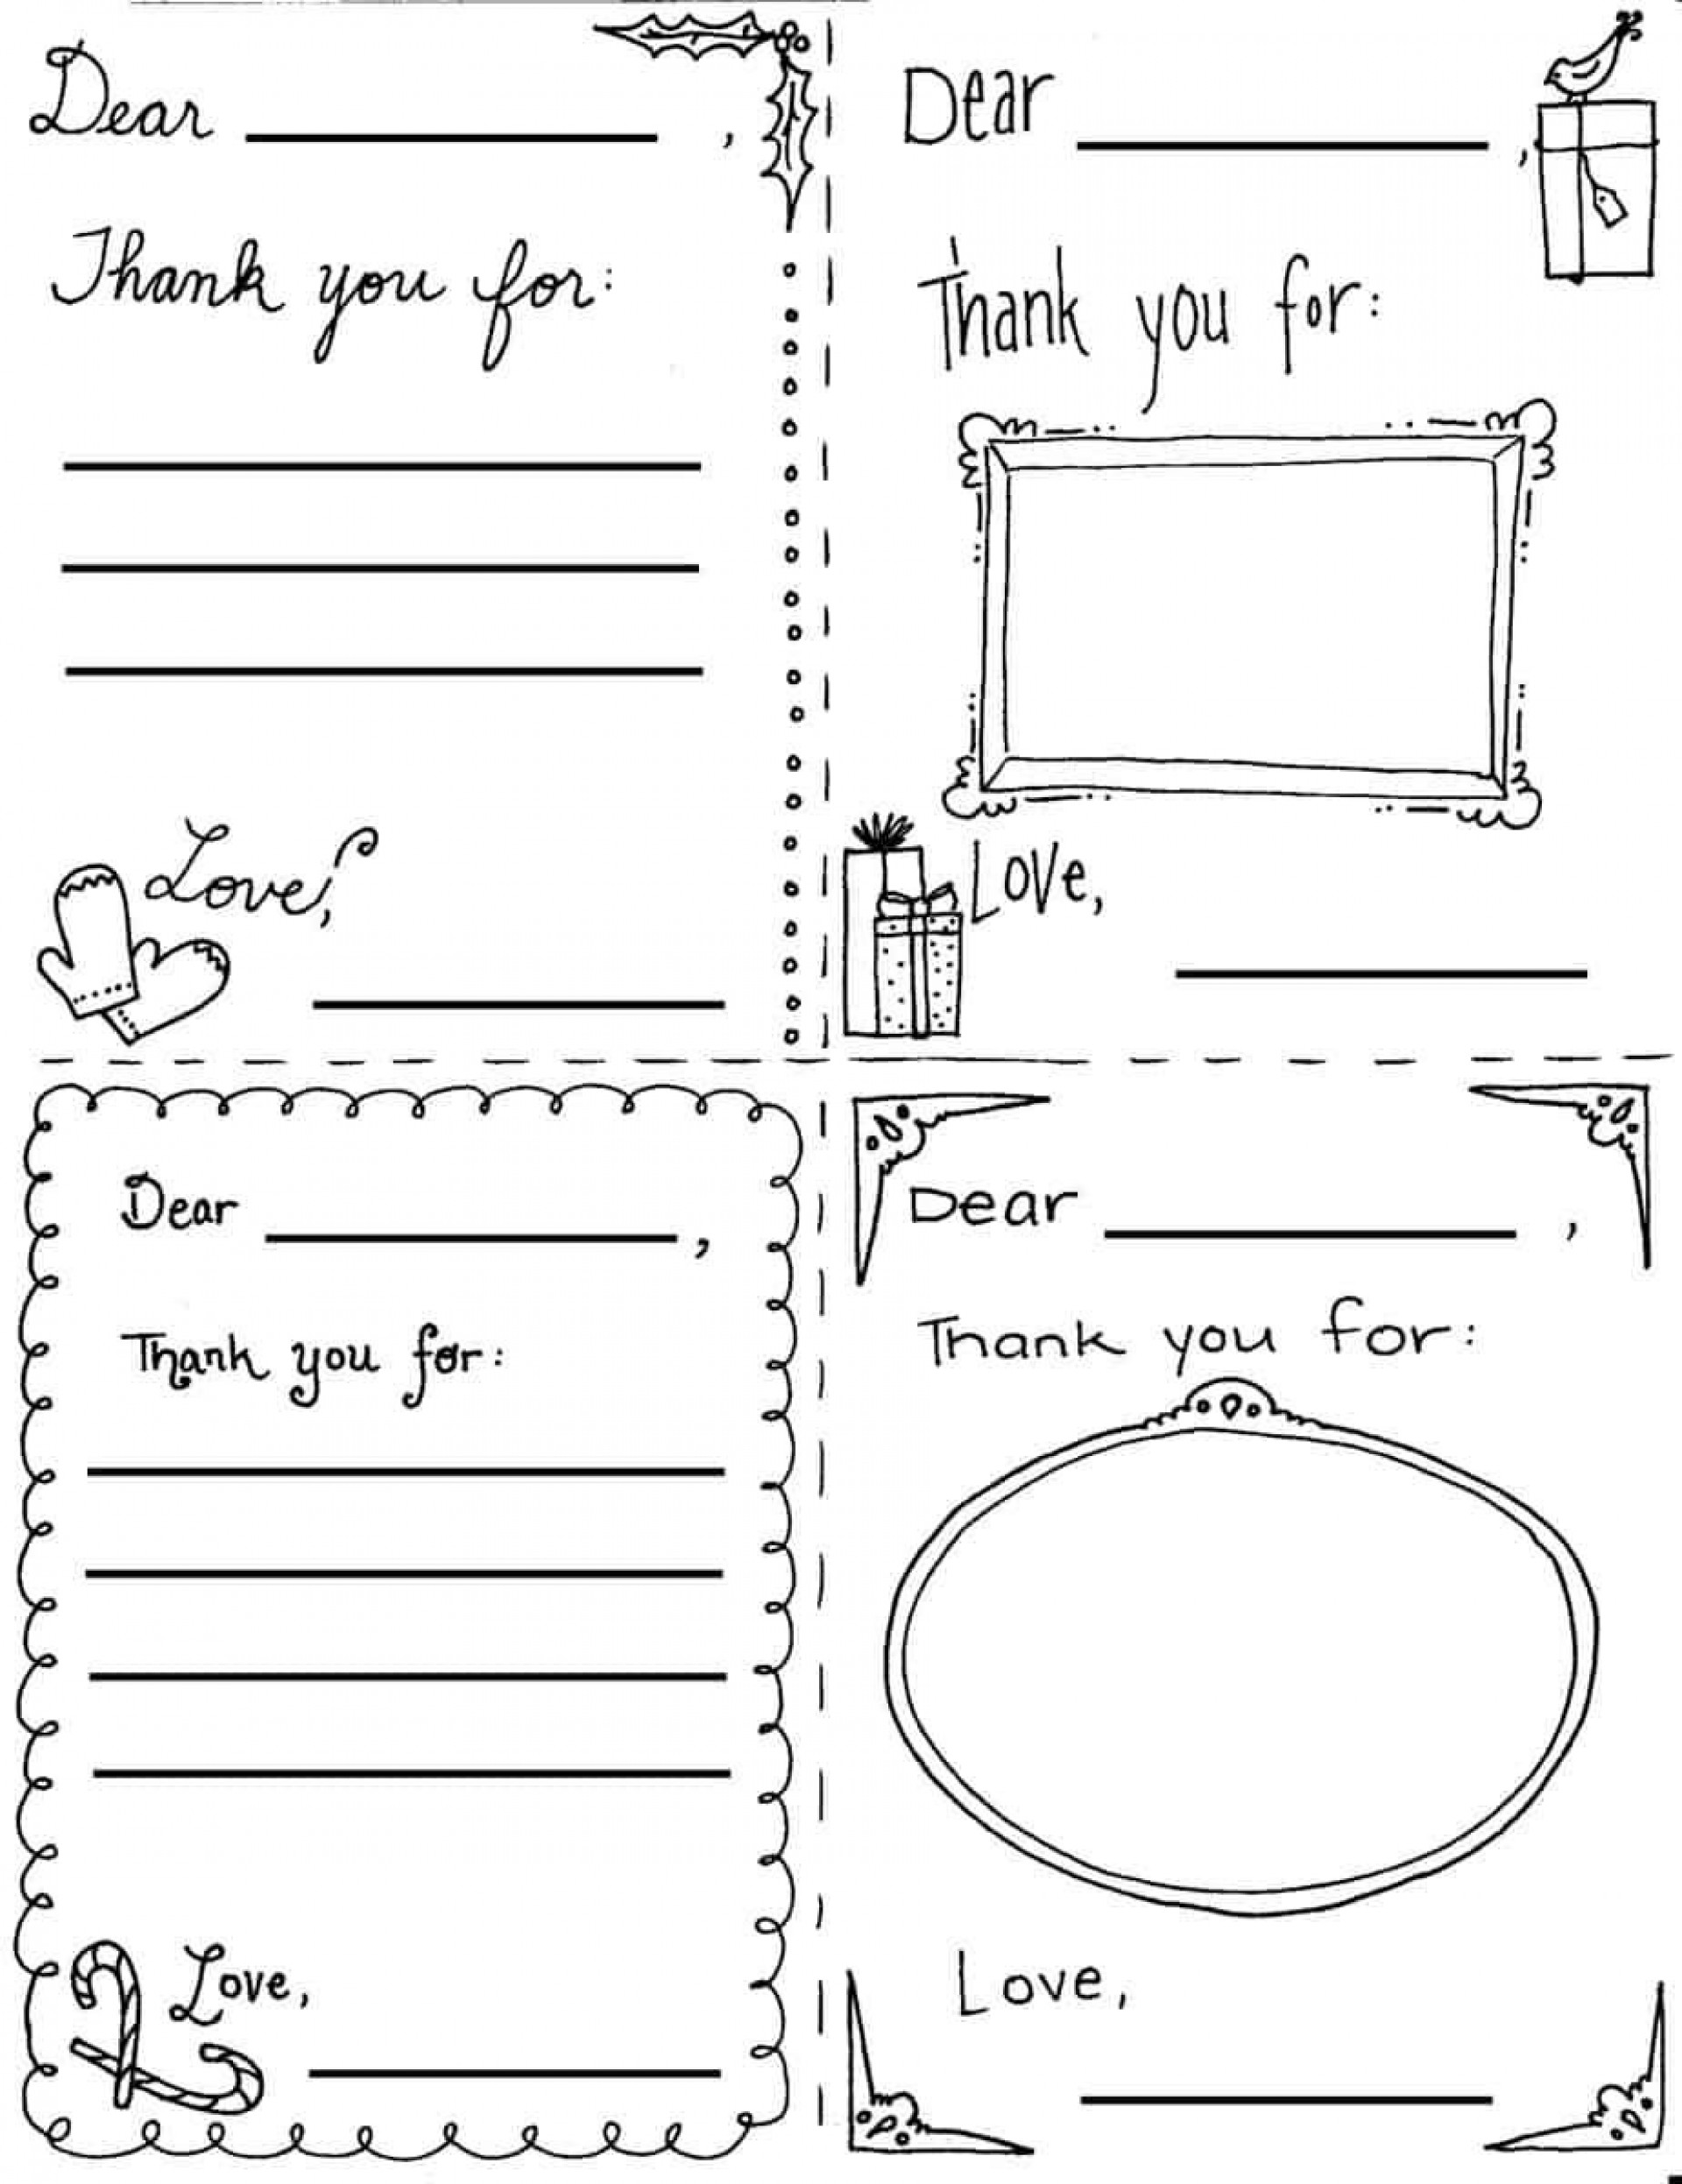 004 Unusual Thank You Note Template Printable Image  Letter Baby Card Word1920